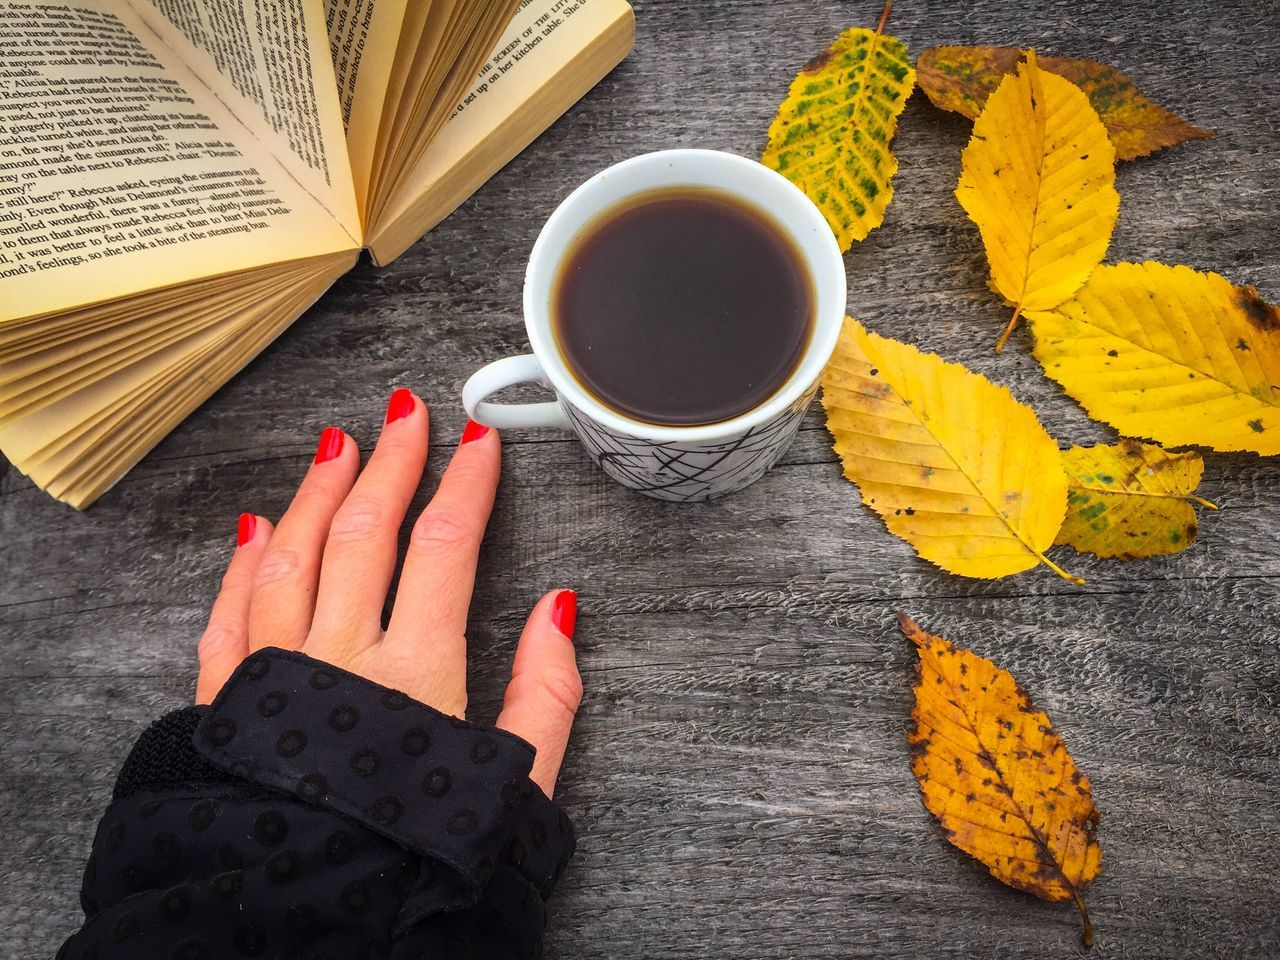 Cup of coffee on wooden table with yellow leaves and a book beside with a woman's hand with red nails Human Hand One Person Food And Drink Human Body Part Real People Table Freshness Close-up Day Hand Woman Nails Red Nails Cup Coffee Drink Coffeine Book Reading Autumn Fall Leaves Rustic Table Yellow